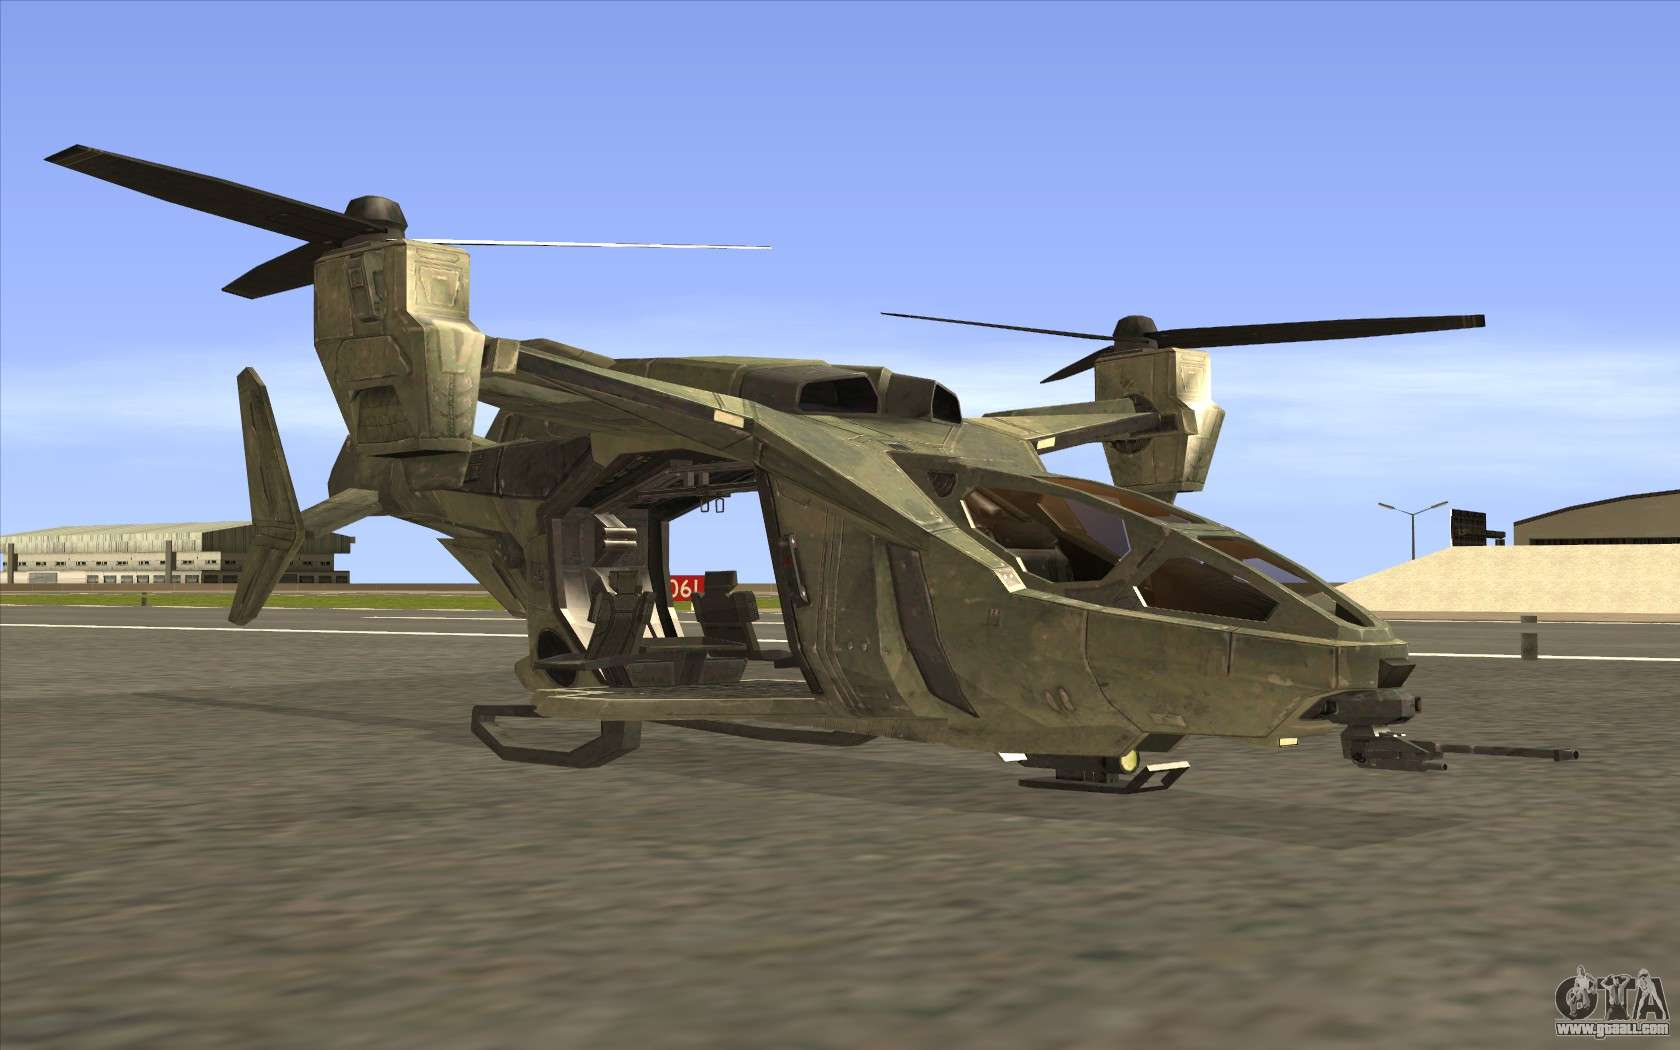 gta 4 cheats helicopter with 49277 Helo4 Future Hunter on NOOSE Patriot besides 27060 Transportnyy Vertolet Sa 2 Samson furthermore 49277 Helo4 Future Hunter additionally Watch moreover GTA 5 Die Fundorte Der Briefschnipsel 8739436.